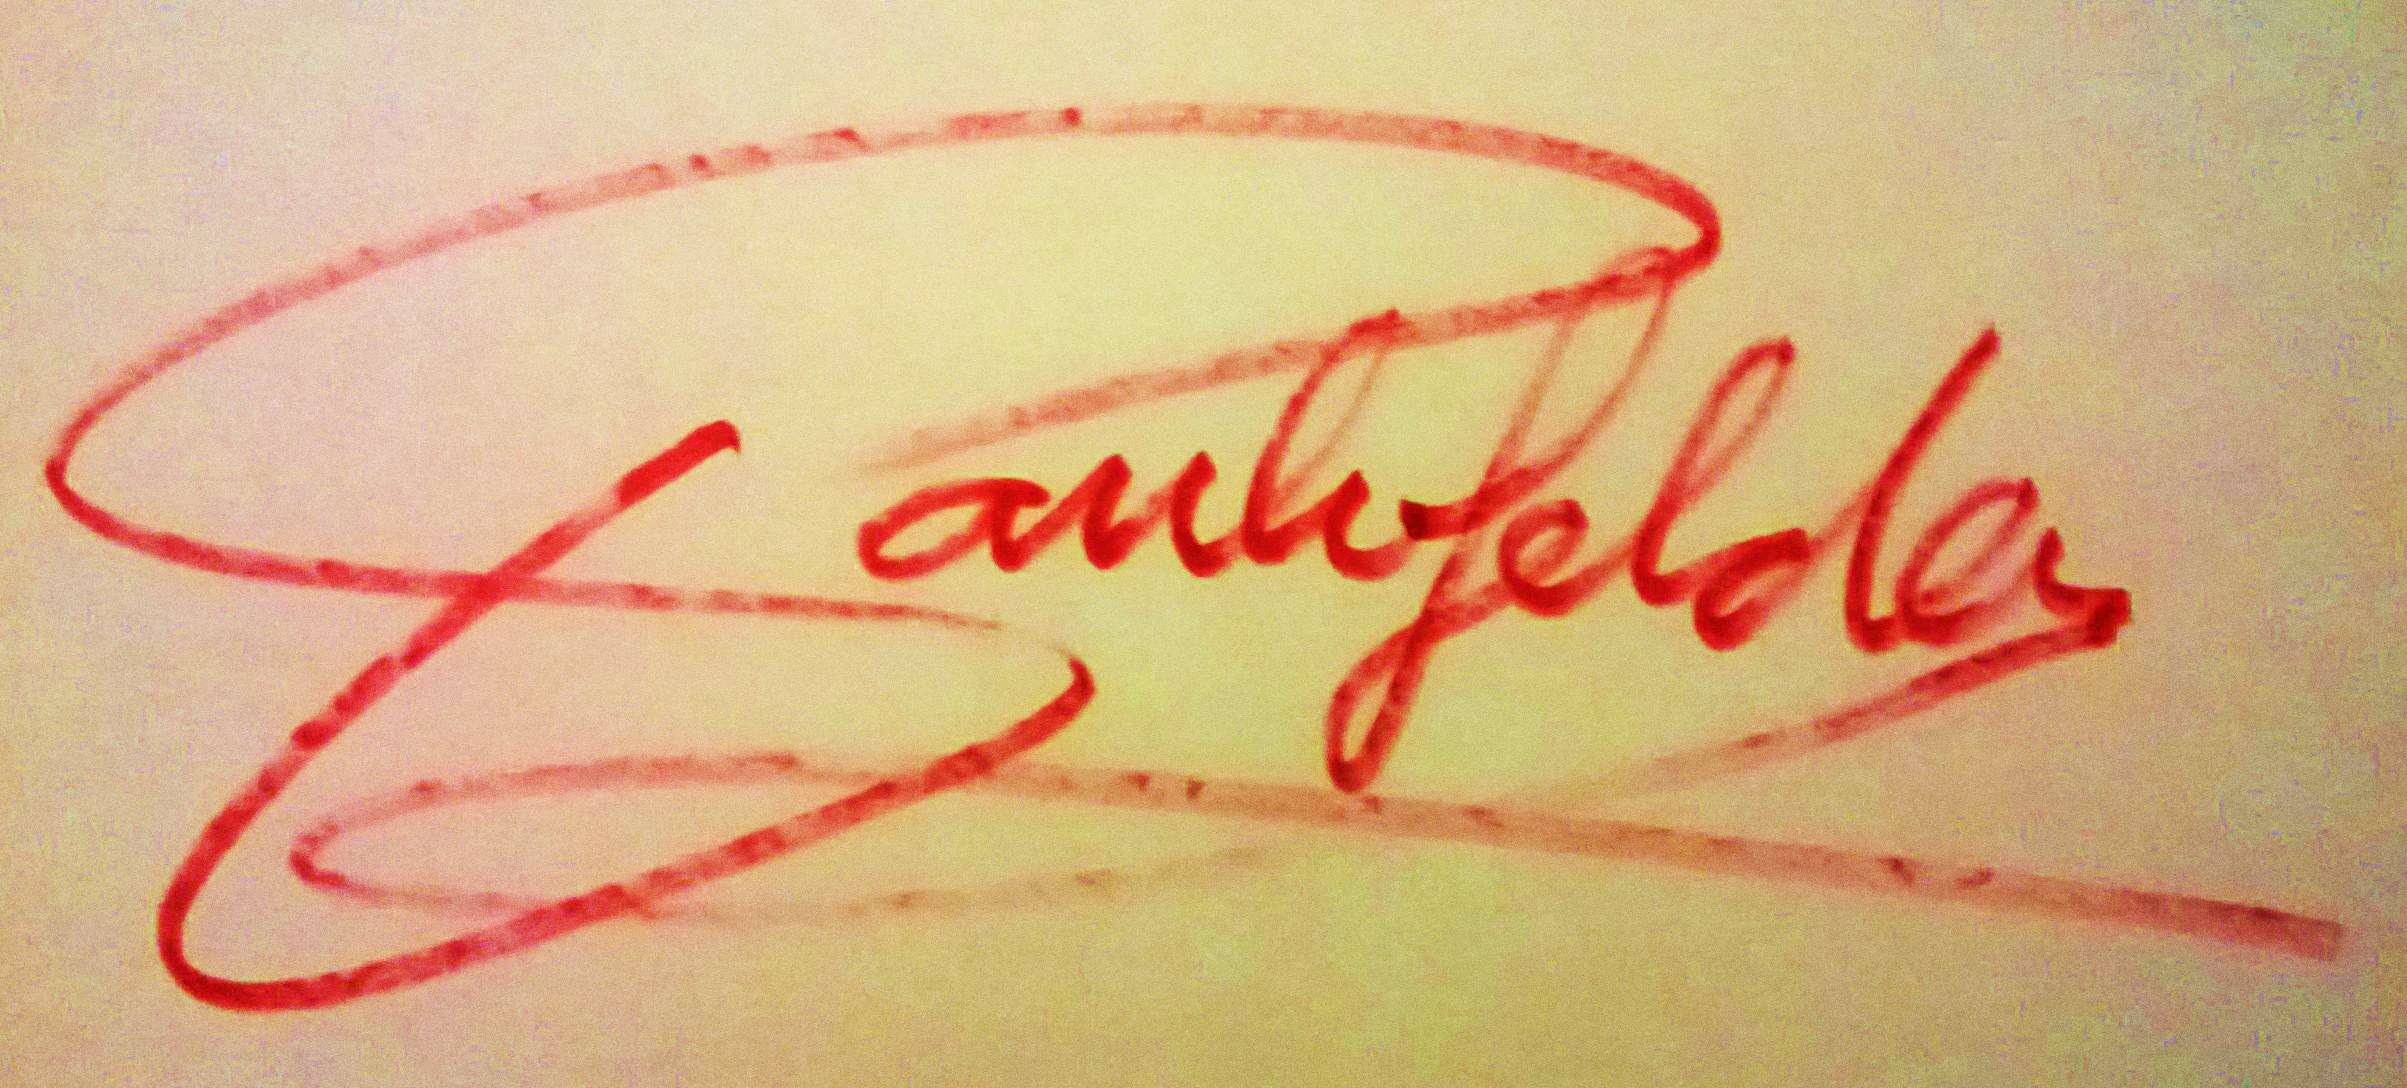 PAUL vanGelder's Signature